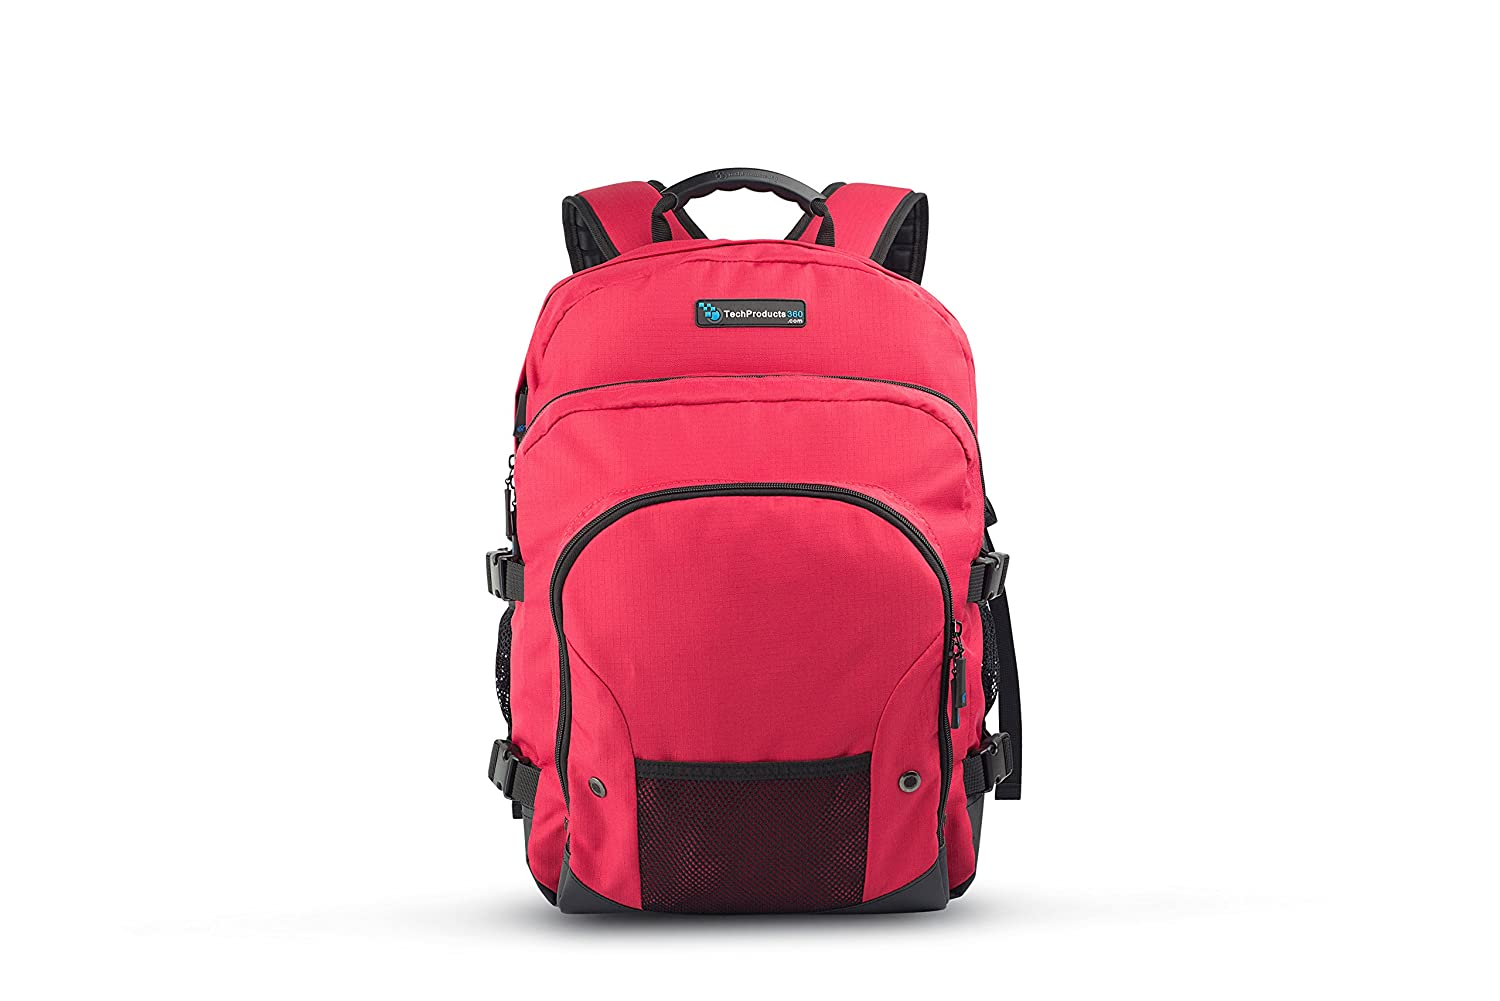 TechProducts 360 Tech Pack Backpack for 16